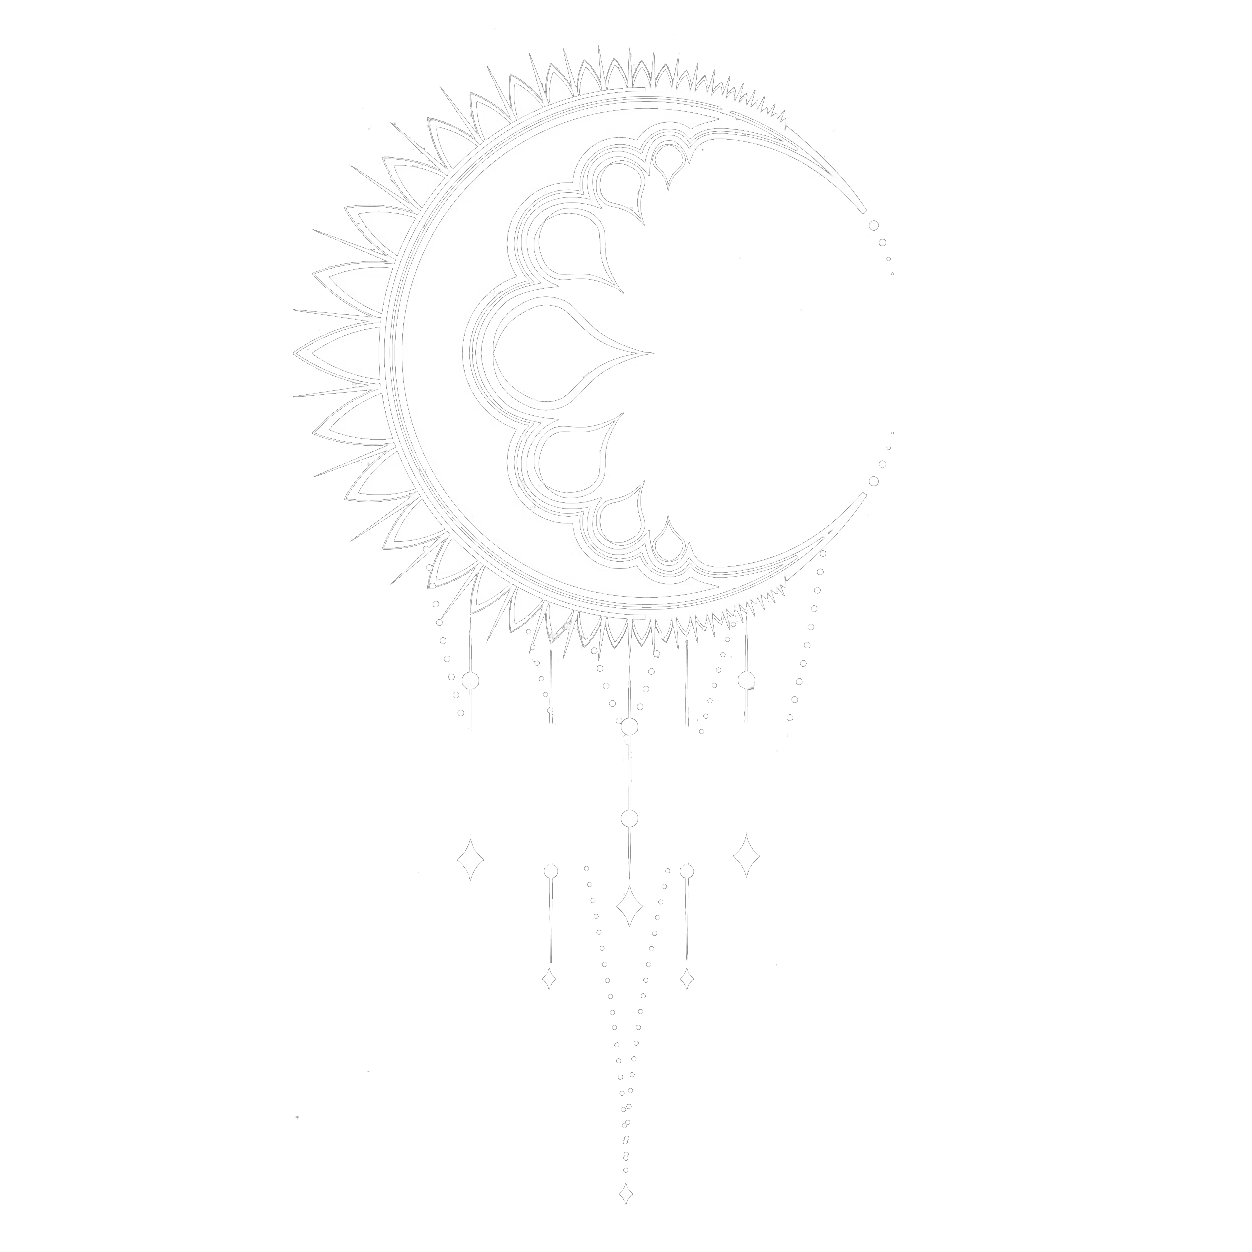 MOONCHILD CREATION